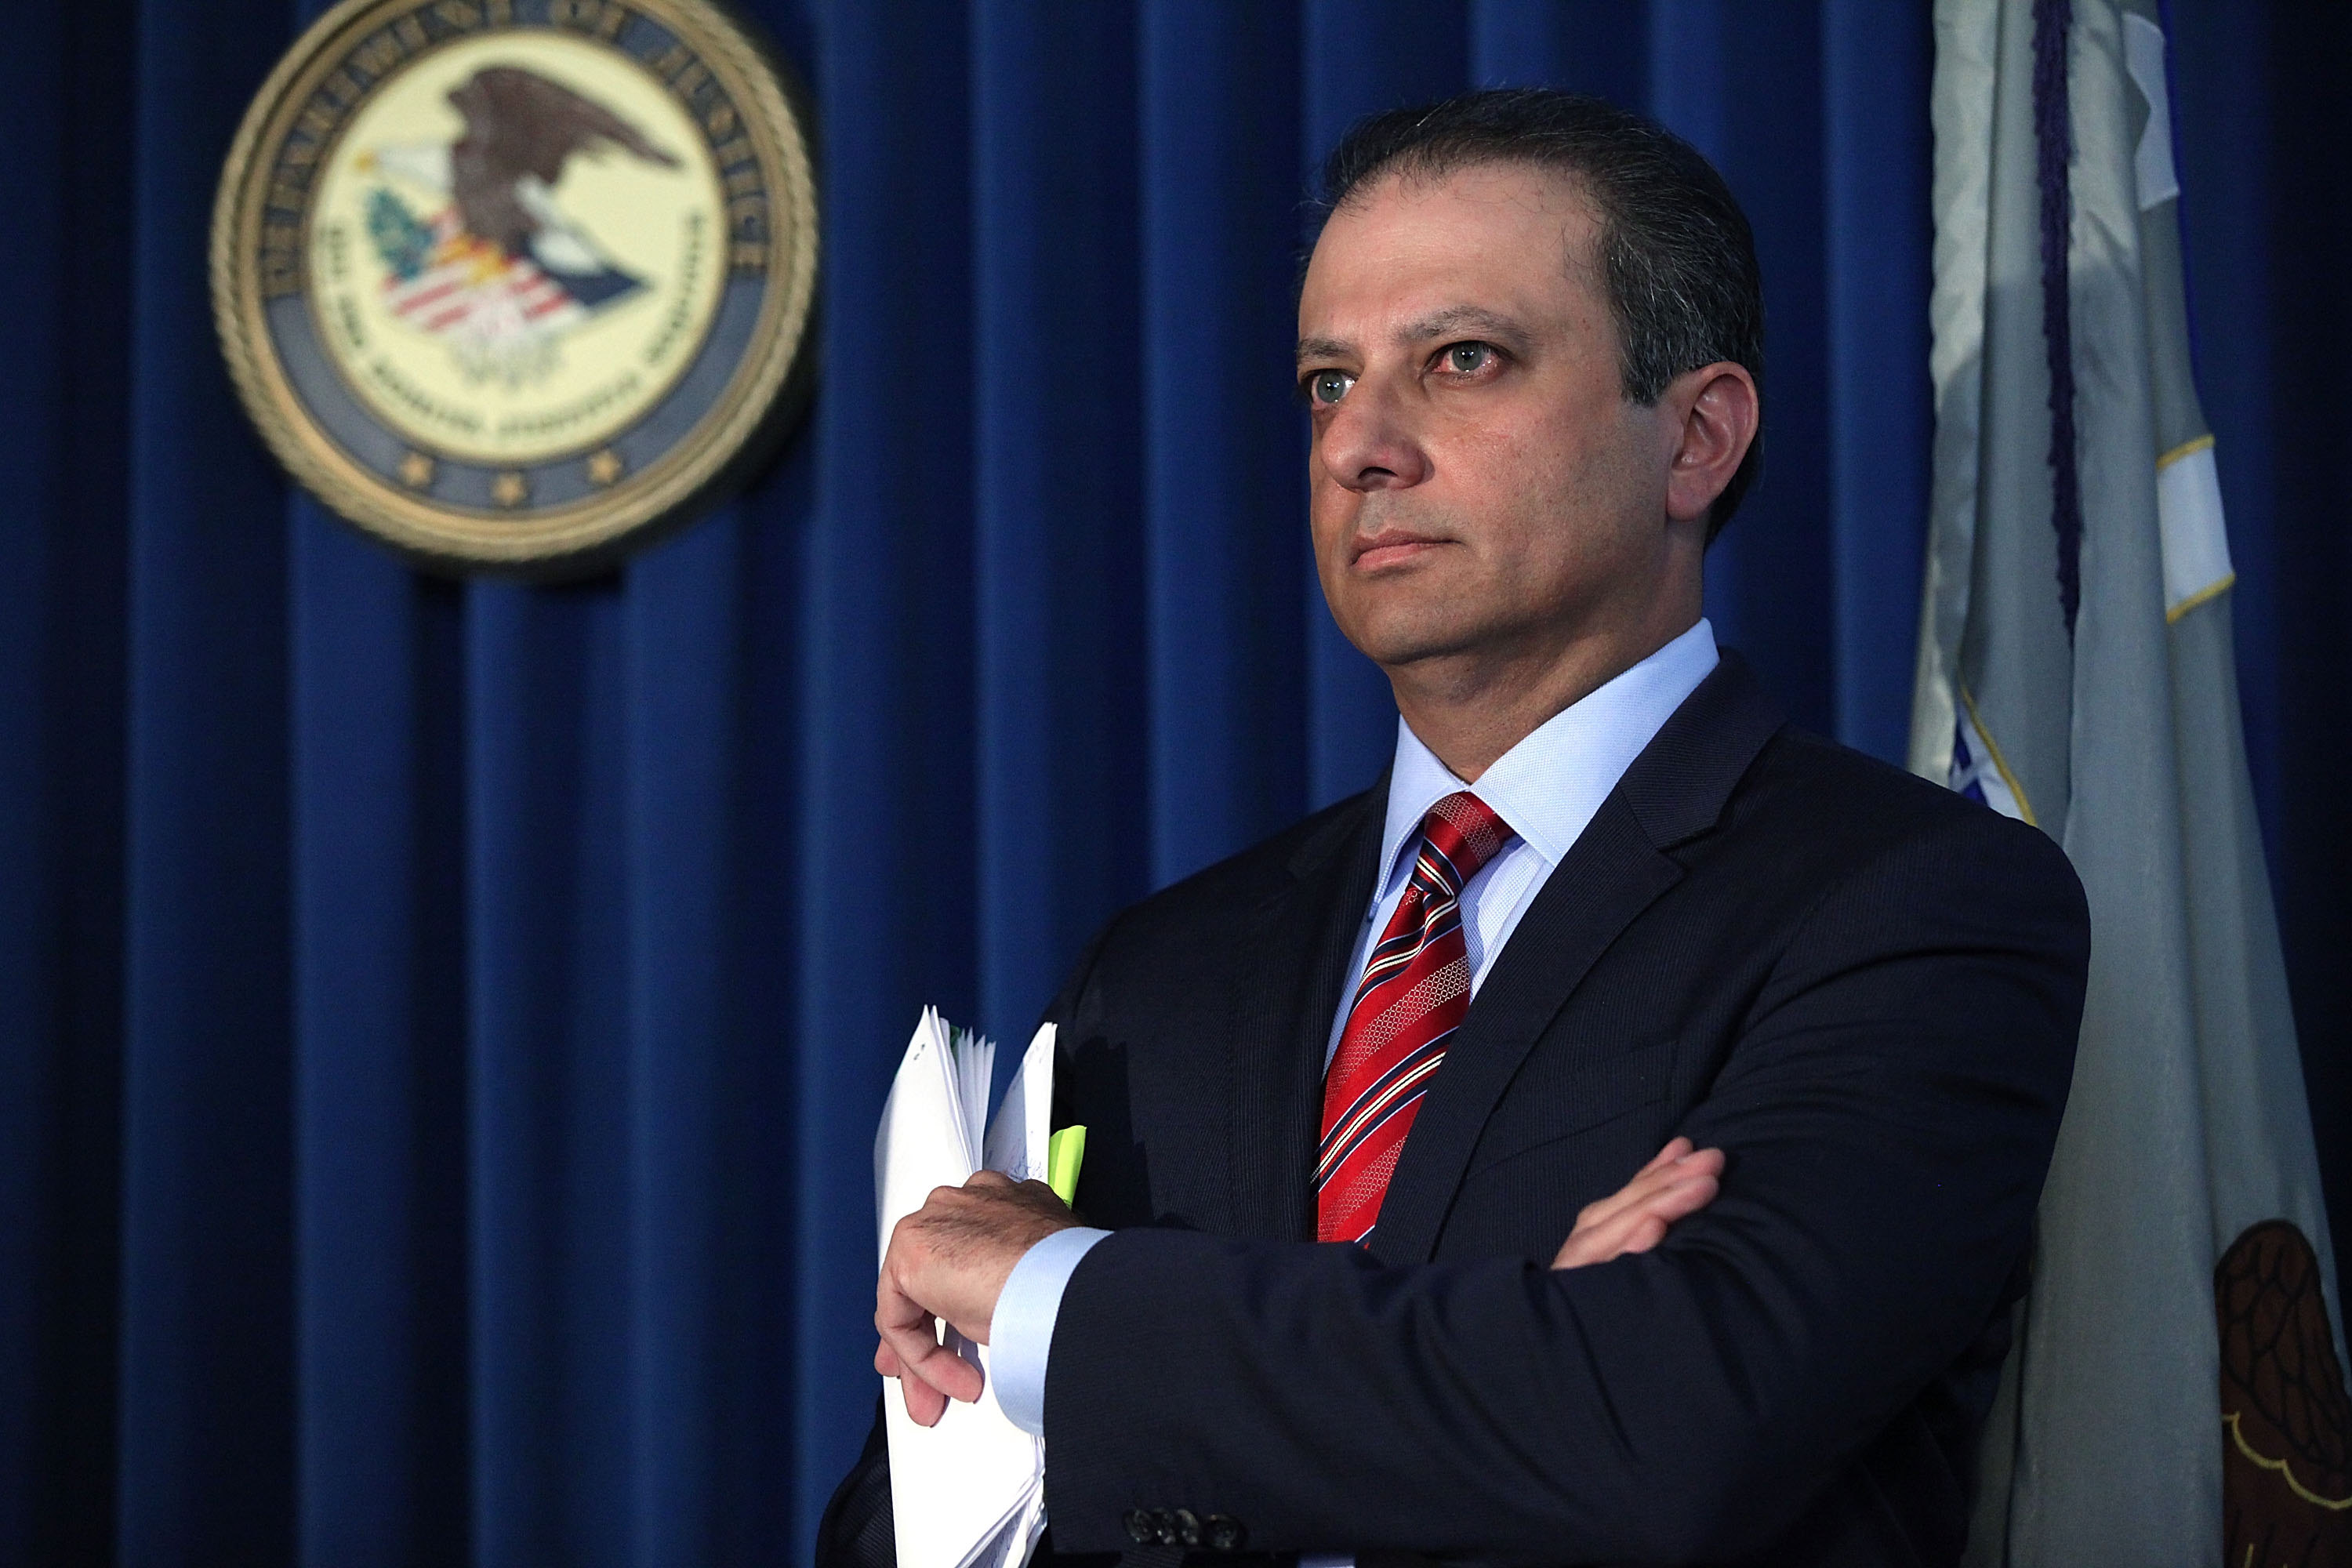 U.S. Attorney Preet Bharara revealed a grand jury indictment against a former portfolio manager at the pension fund for state and local government employees.